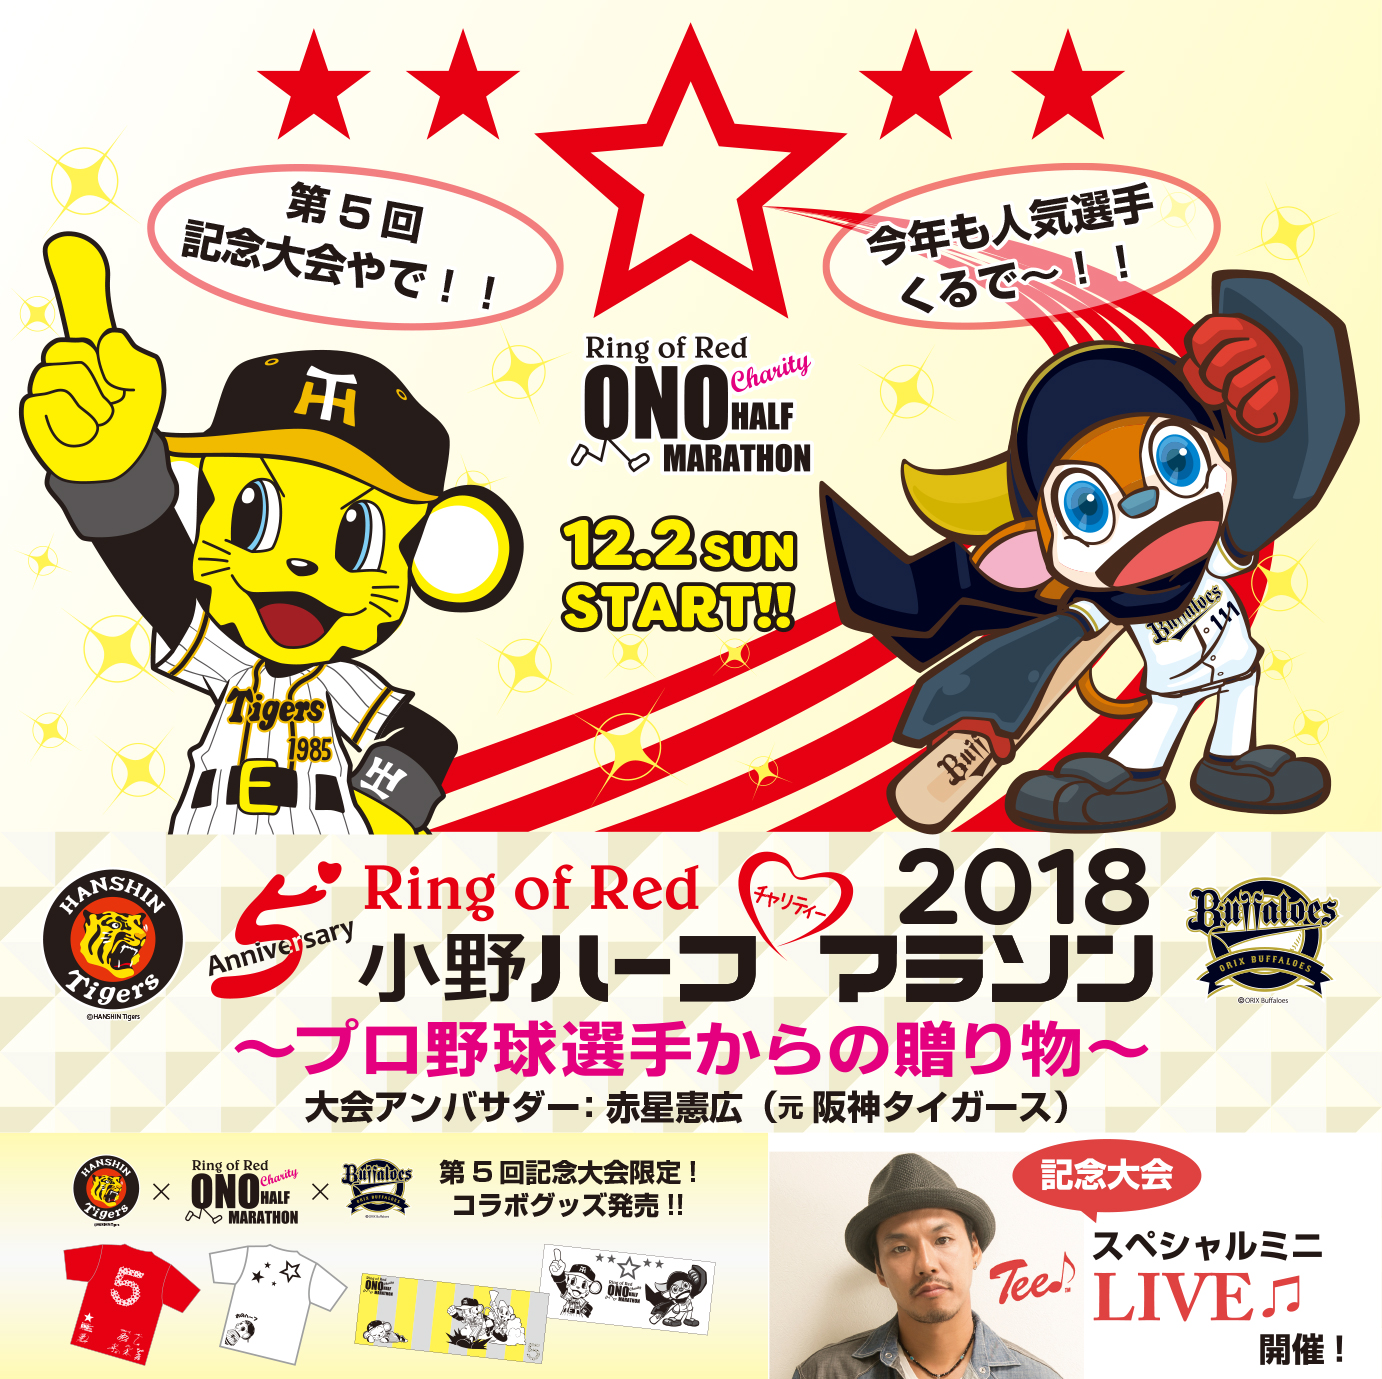 Ring of Red 第5回小野ハーフマラソン2018 記念大会